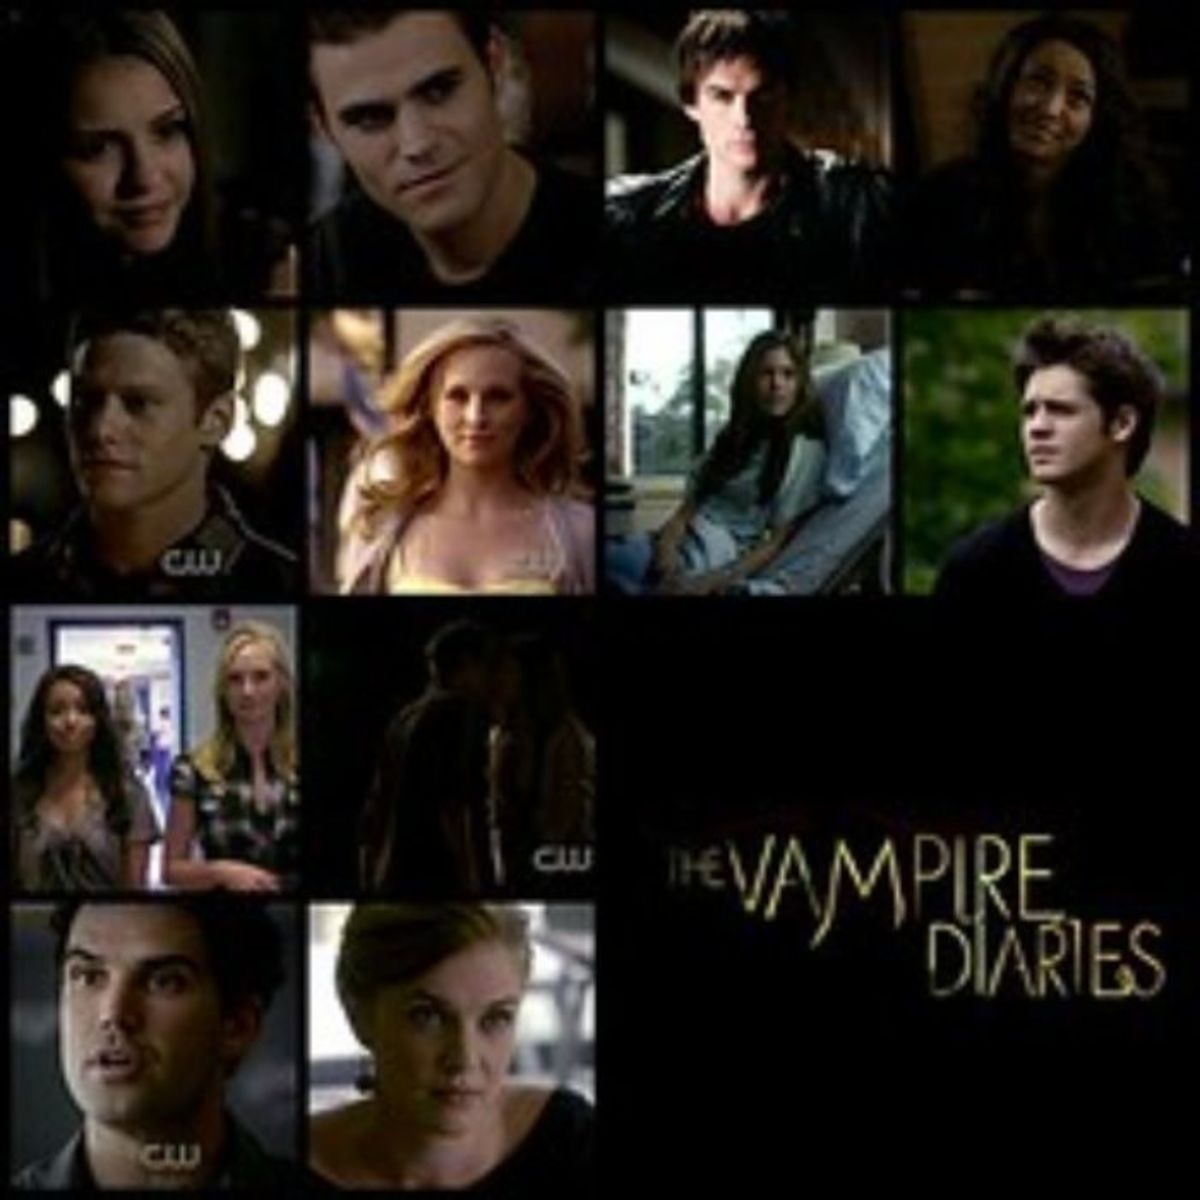 """''The Vampire Diaries'' collage :)"" by мєℓιѕѕα'ѕ ƒℓι¢кя (: is licensed under CC BY 2.0"